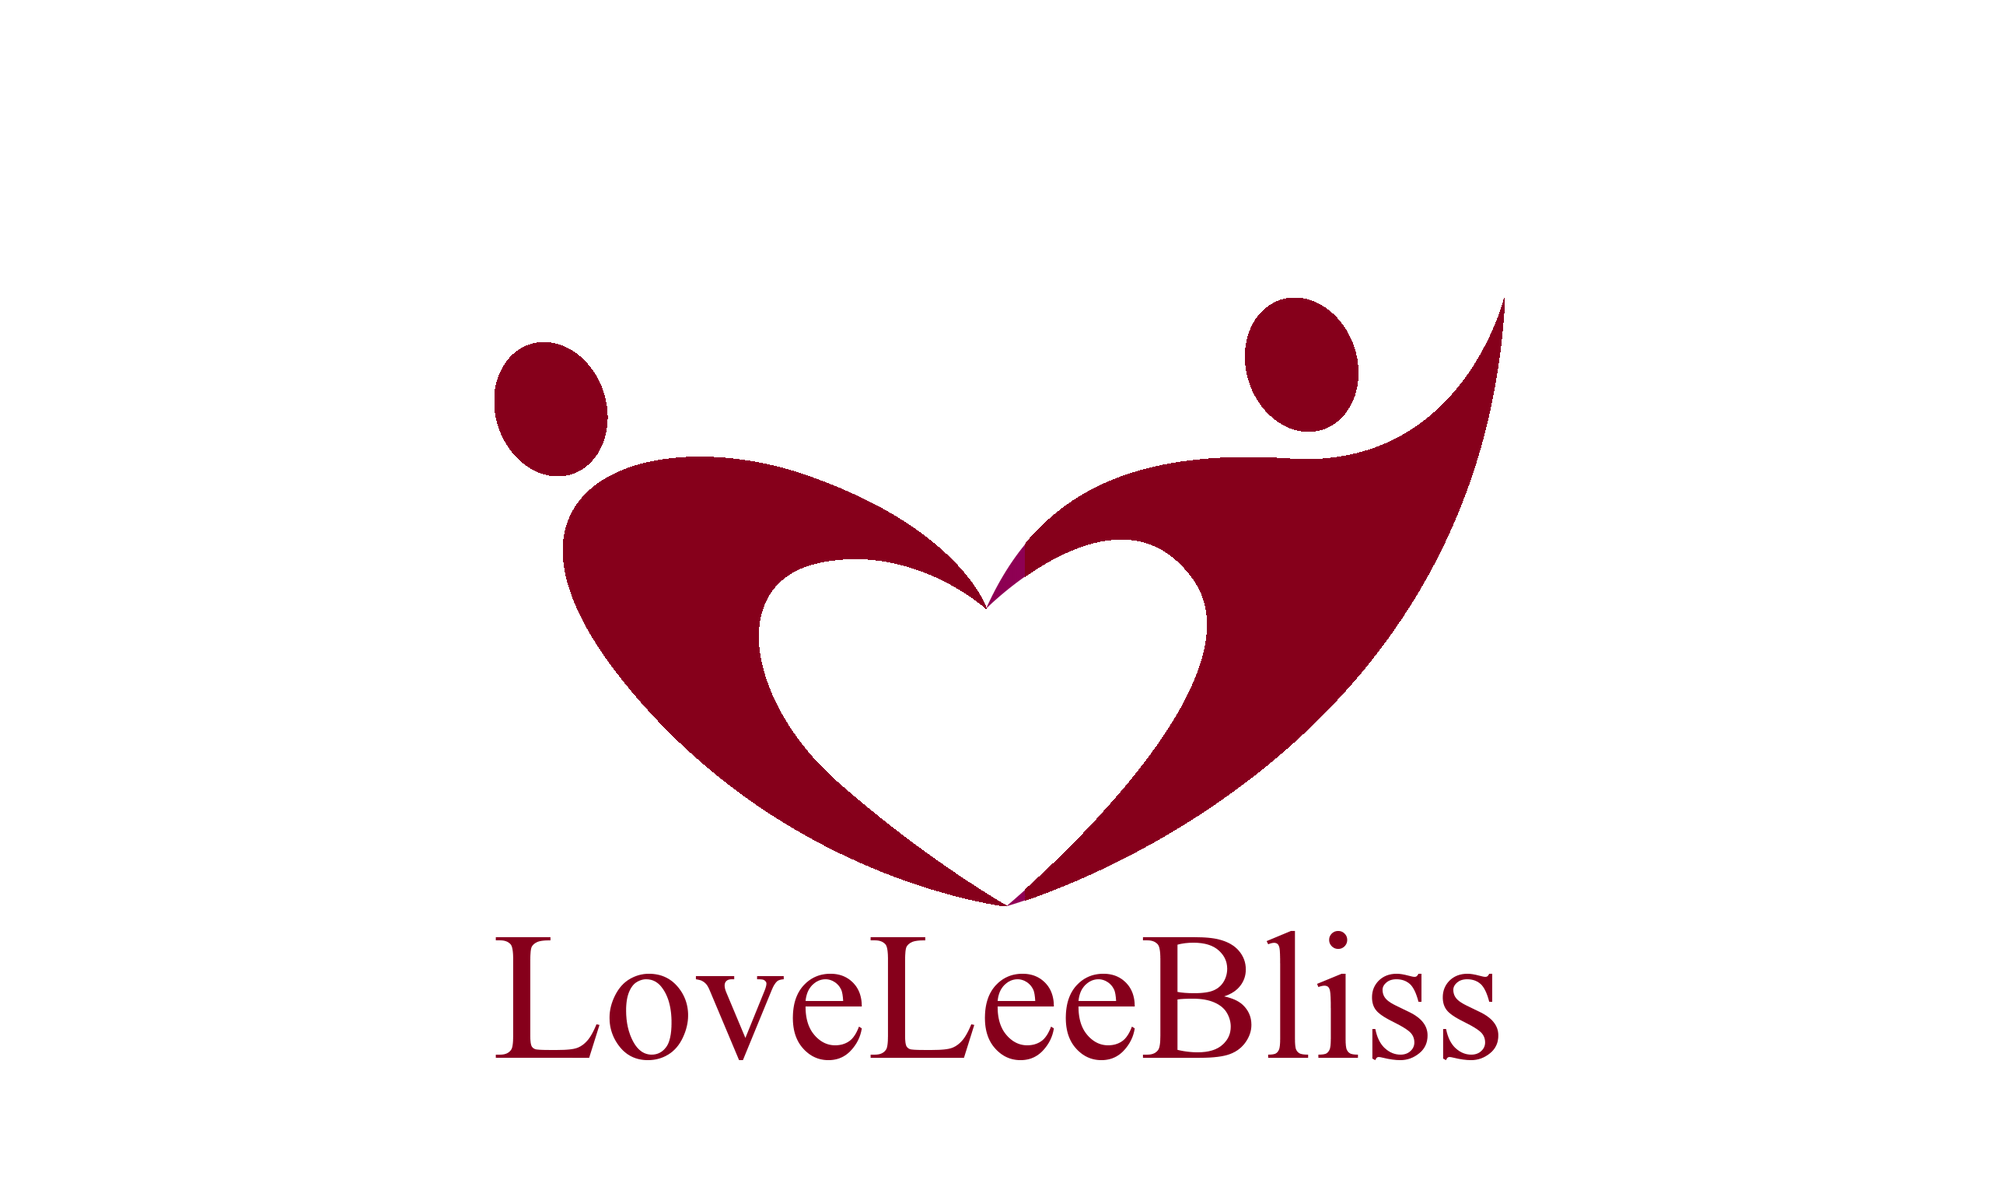 LoveLeeBliss provides high quality Women's Clothing and Fitness apparel.  Our fitness apparel is comfortable and affordable.  Our Women's Clothing allow women to express themselves through bold and socially conscious statements.